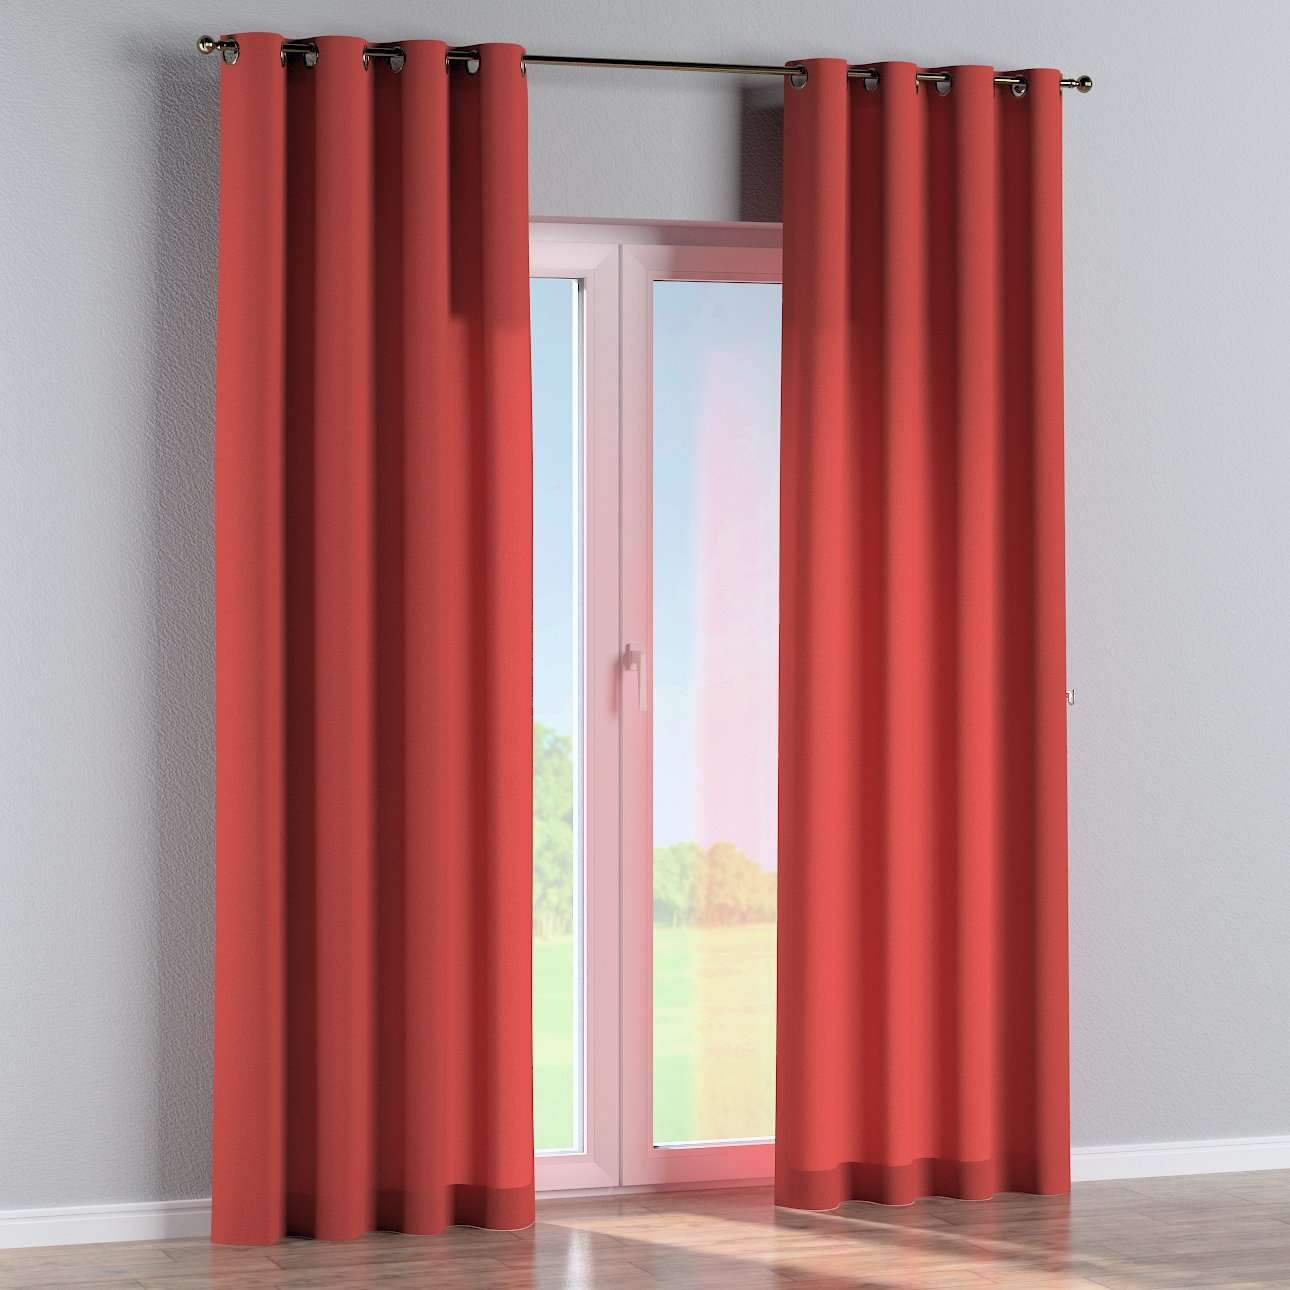 Eyelet curtains in collection Woolly, fabric: 142-33